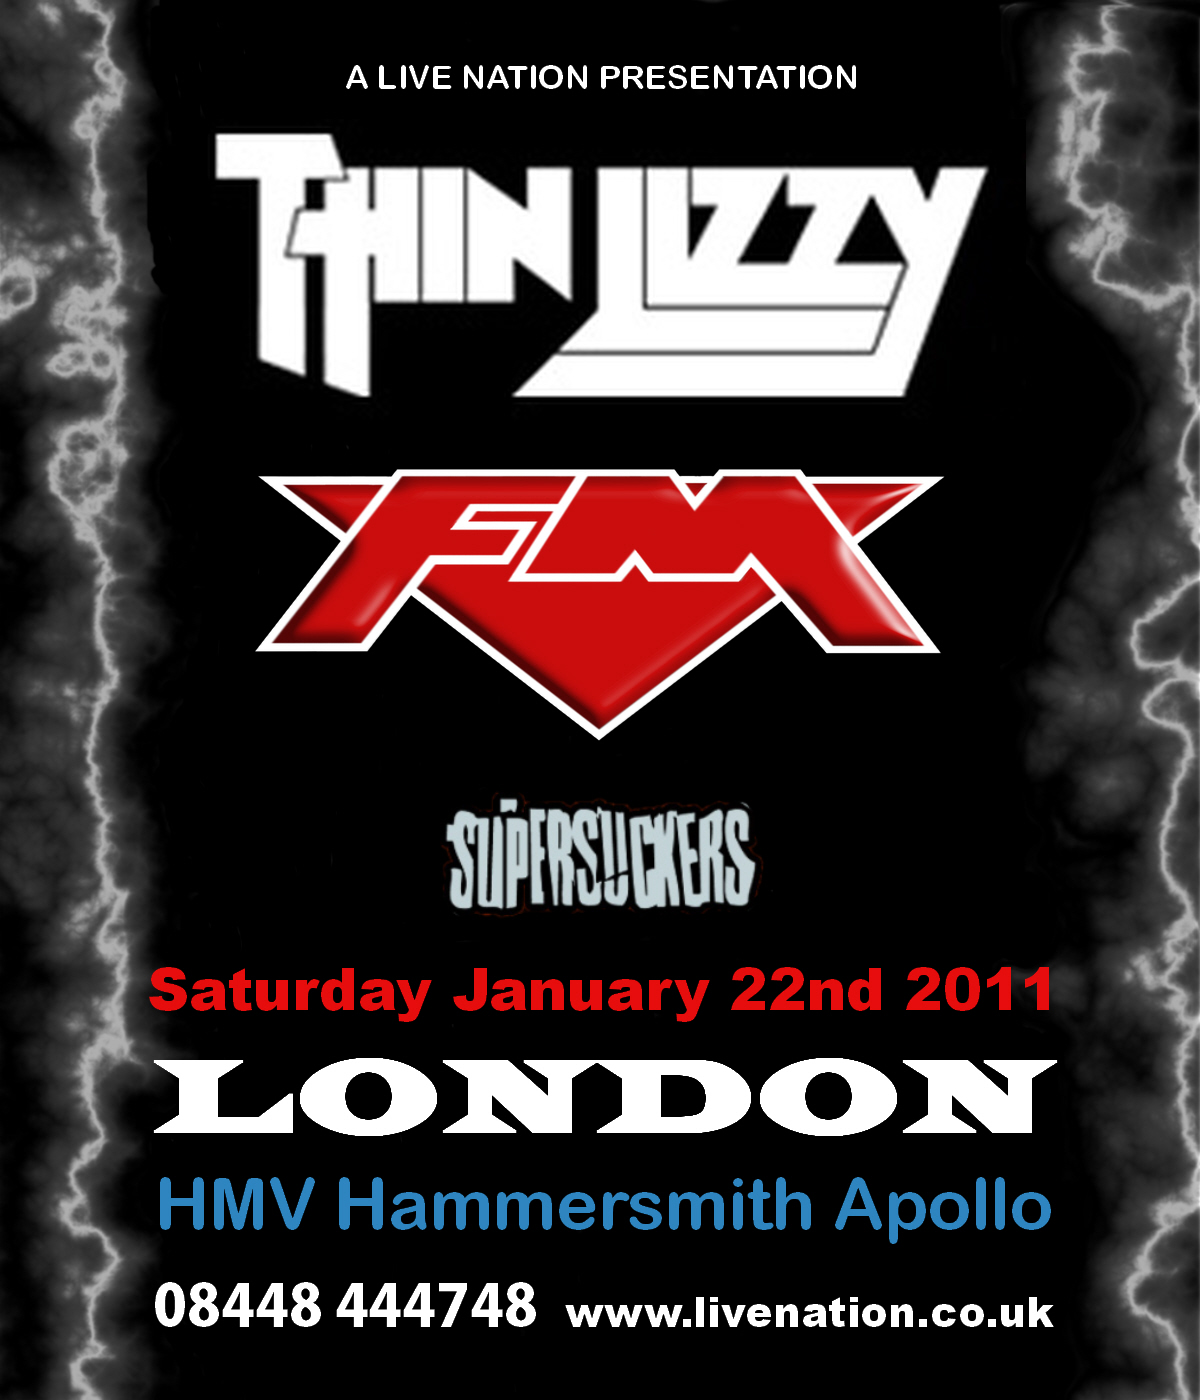 Thin Lizzy / FM / Supersuckers - 22 Jan 2011 - Hammersmith Apollo